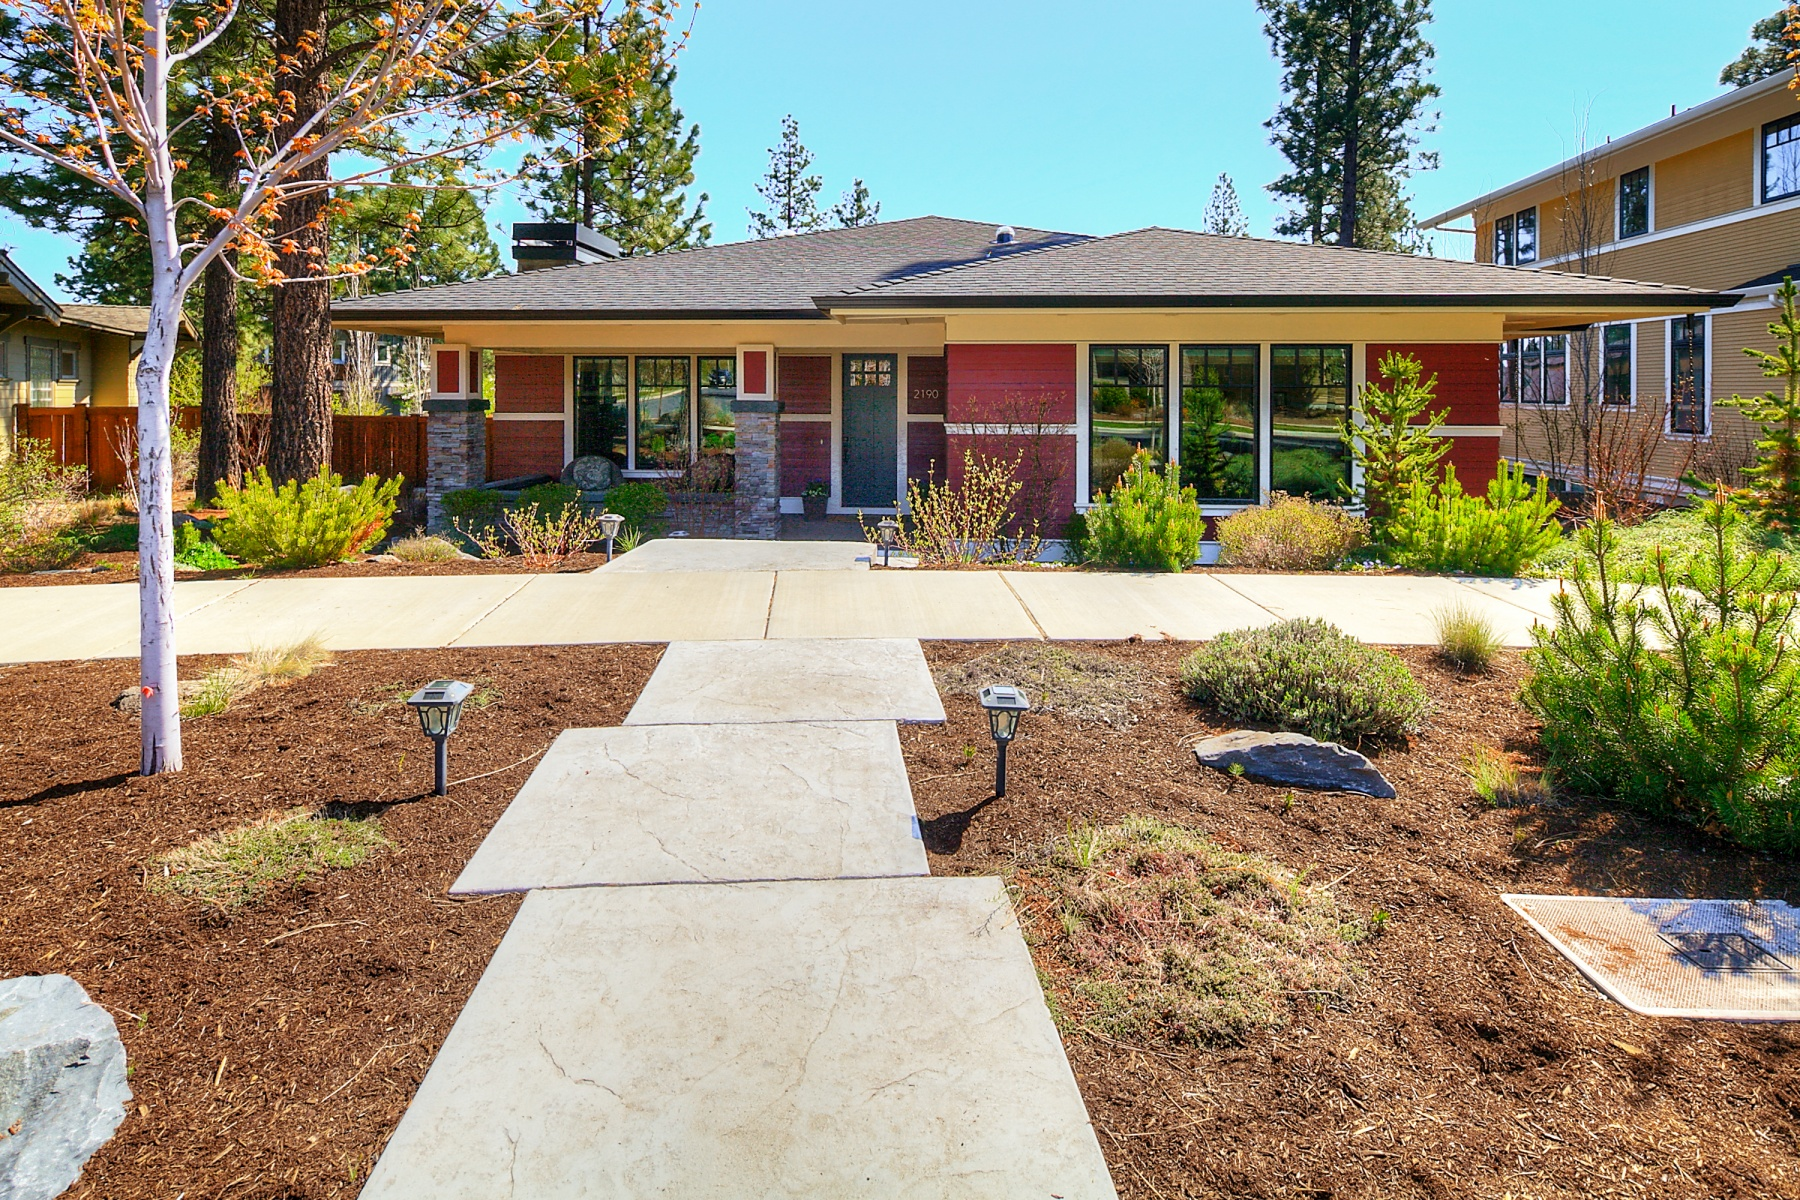 Single Family Home for Sale at 2190 NW Clearwater, BEND 2190 NW Clearwater Dr Bend, Oregon, 97703 United States